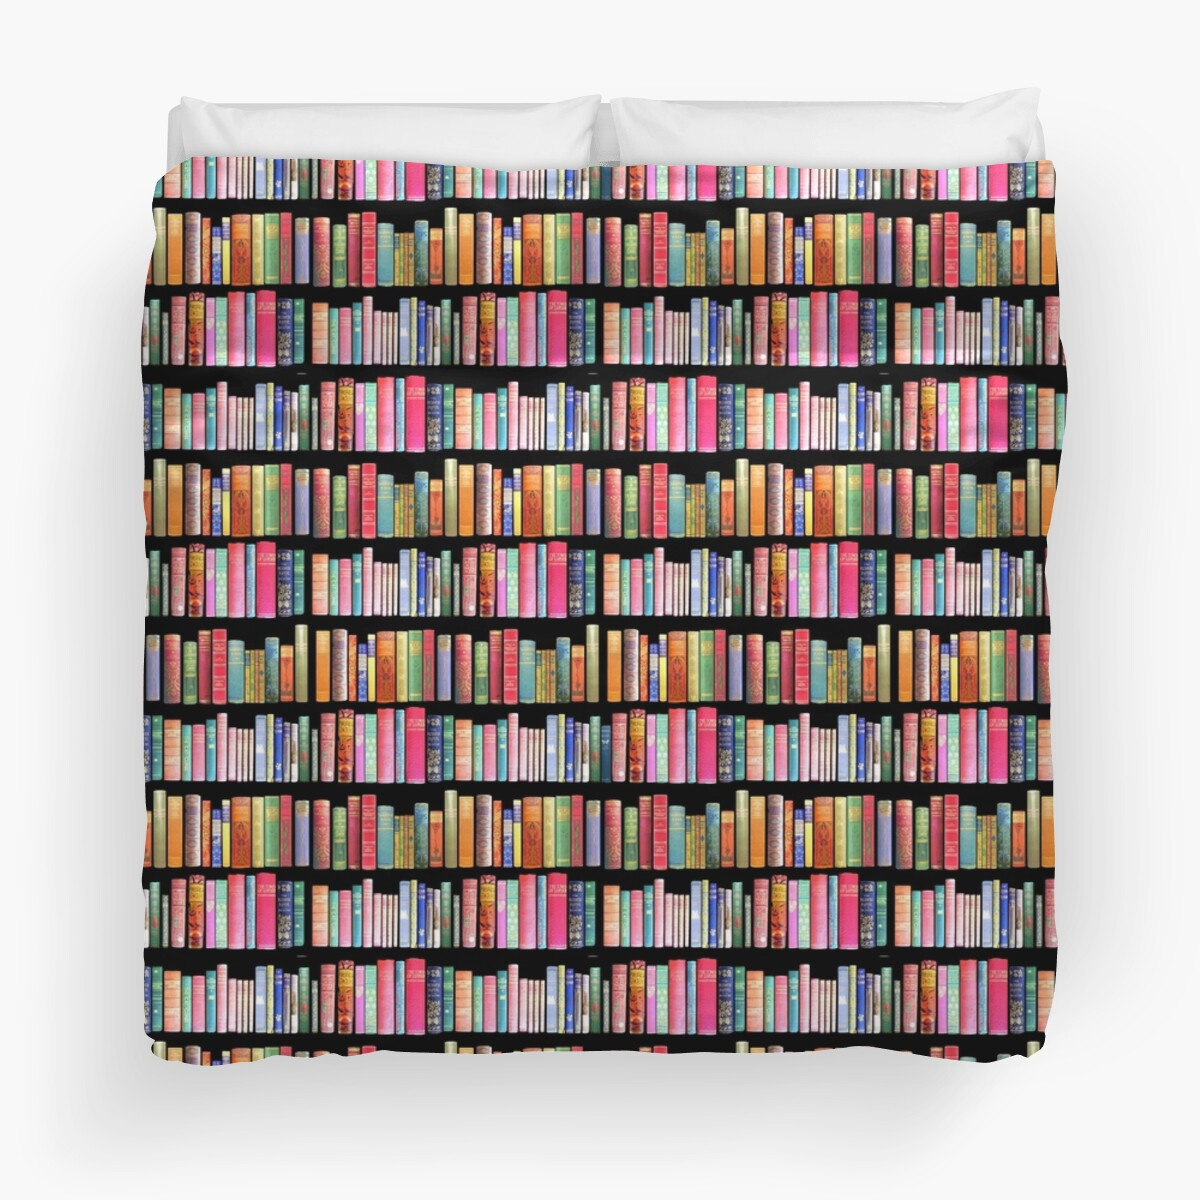 Bookworms Delight / Antique Book Library for Bibliophile by MagentaRose